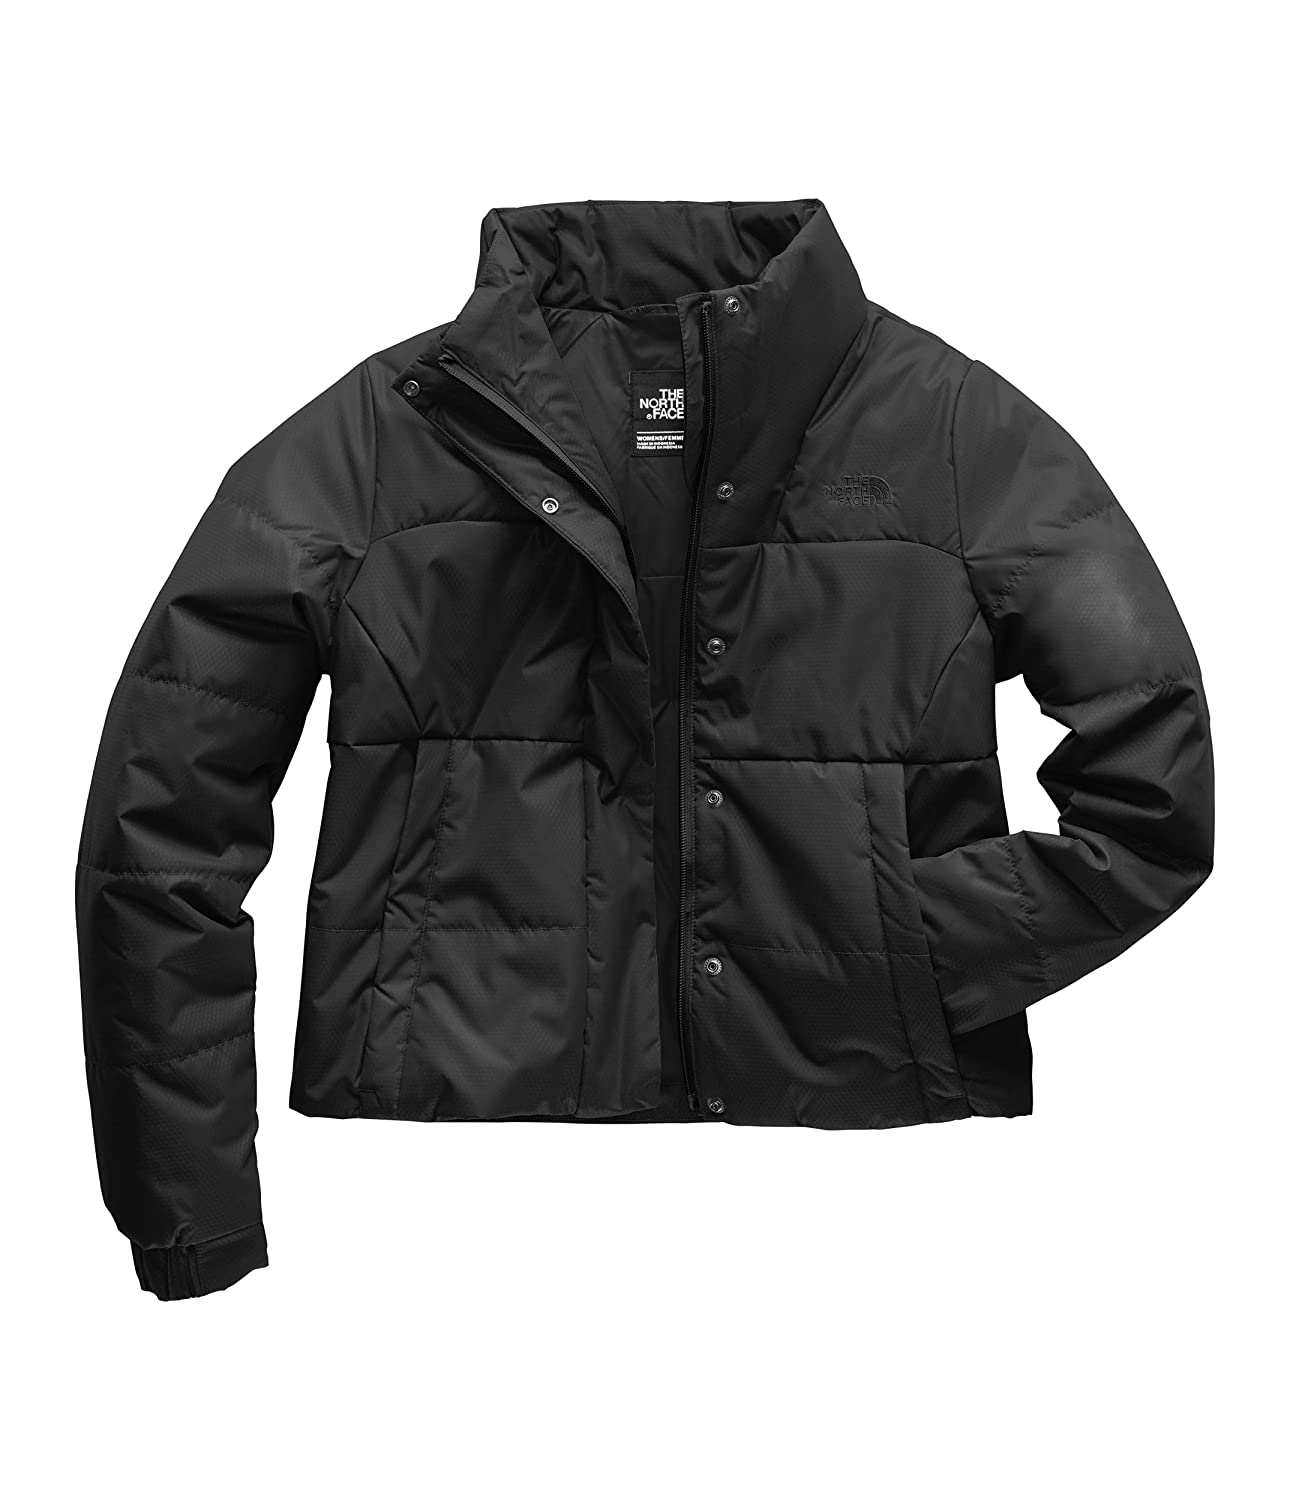 1643b237c The North Face Women's Femtastic Insulated Jacket